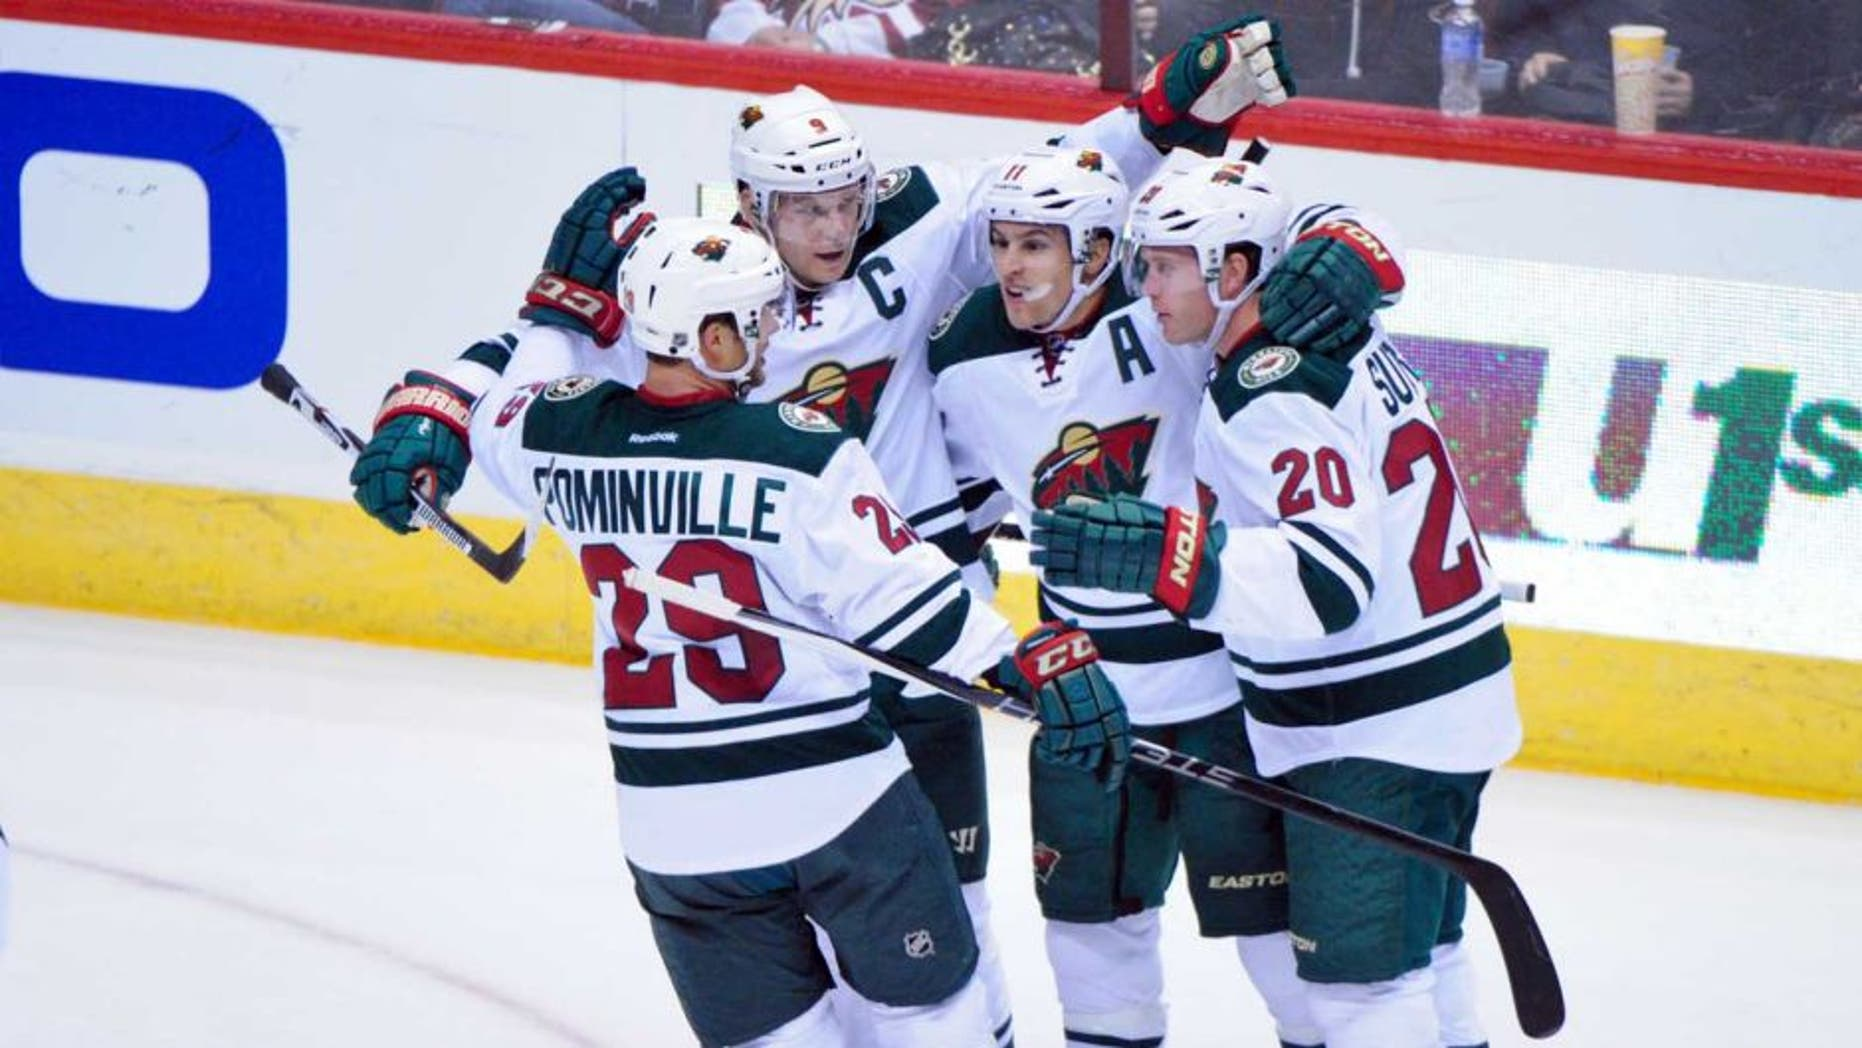 Thursday, Oct. 15: Minnesota Wild left wing Zach Parise (second from right) celebrates with right wing Jason Pominville (left), defenseman Ryan Suter (right) and center Mikko Koivu after scoring a power play goal in the first period against the Arizona Coyotes at Gila River Arena.